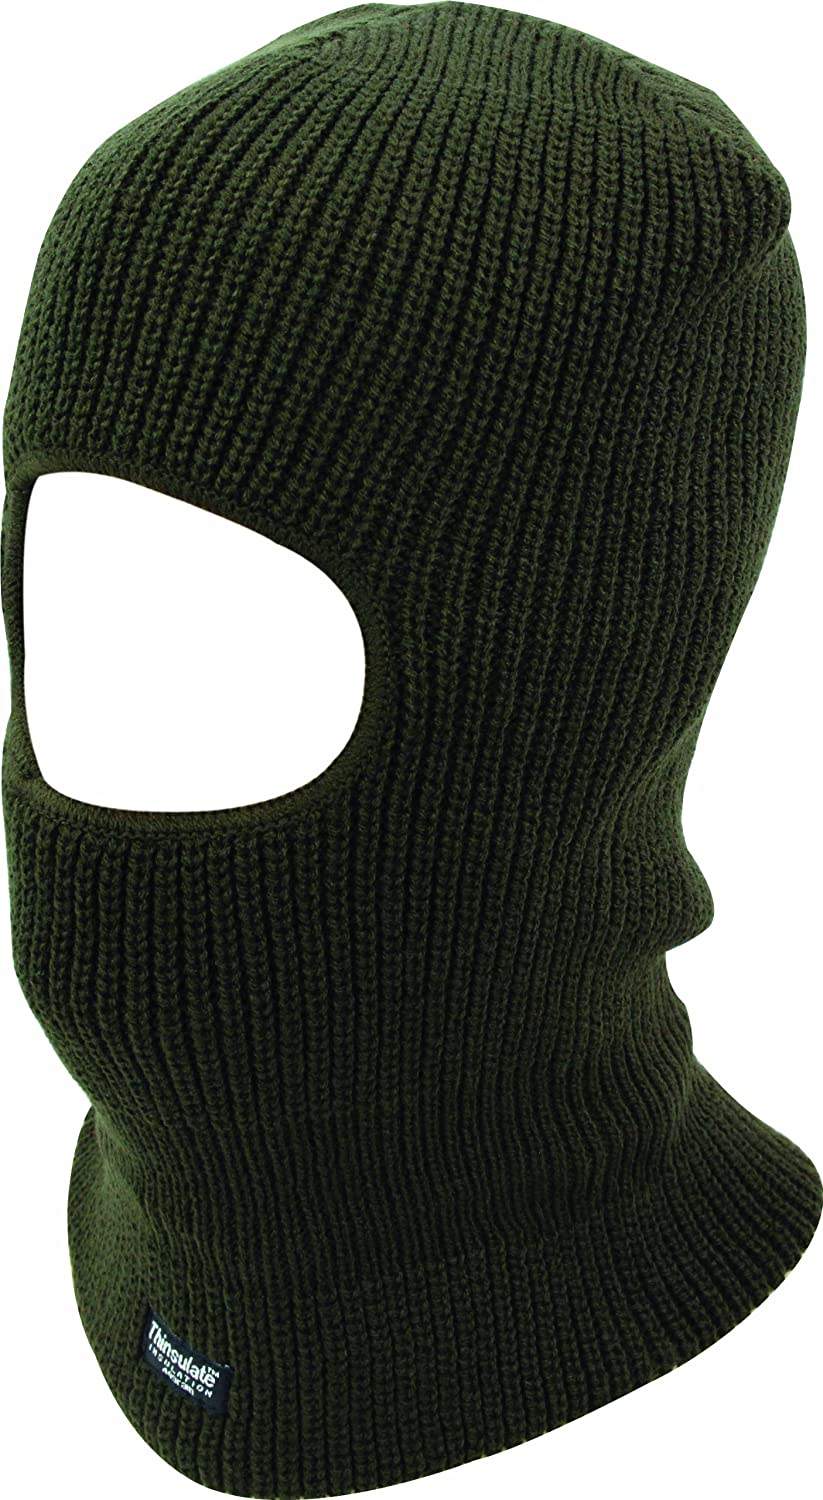 Highlander Open Face Thinsulate Balaclava One Size HAT154-BK-01